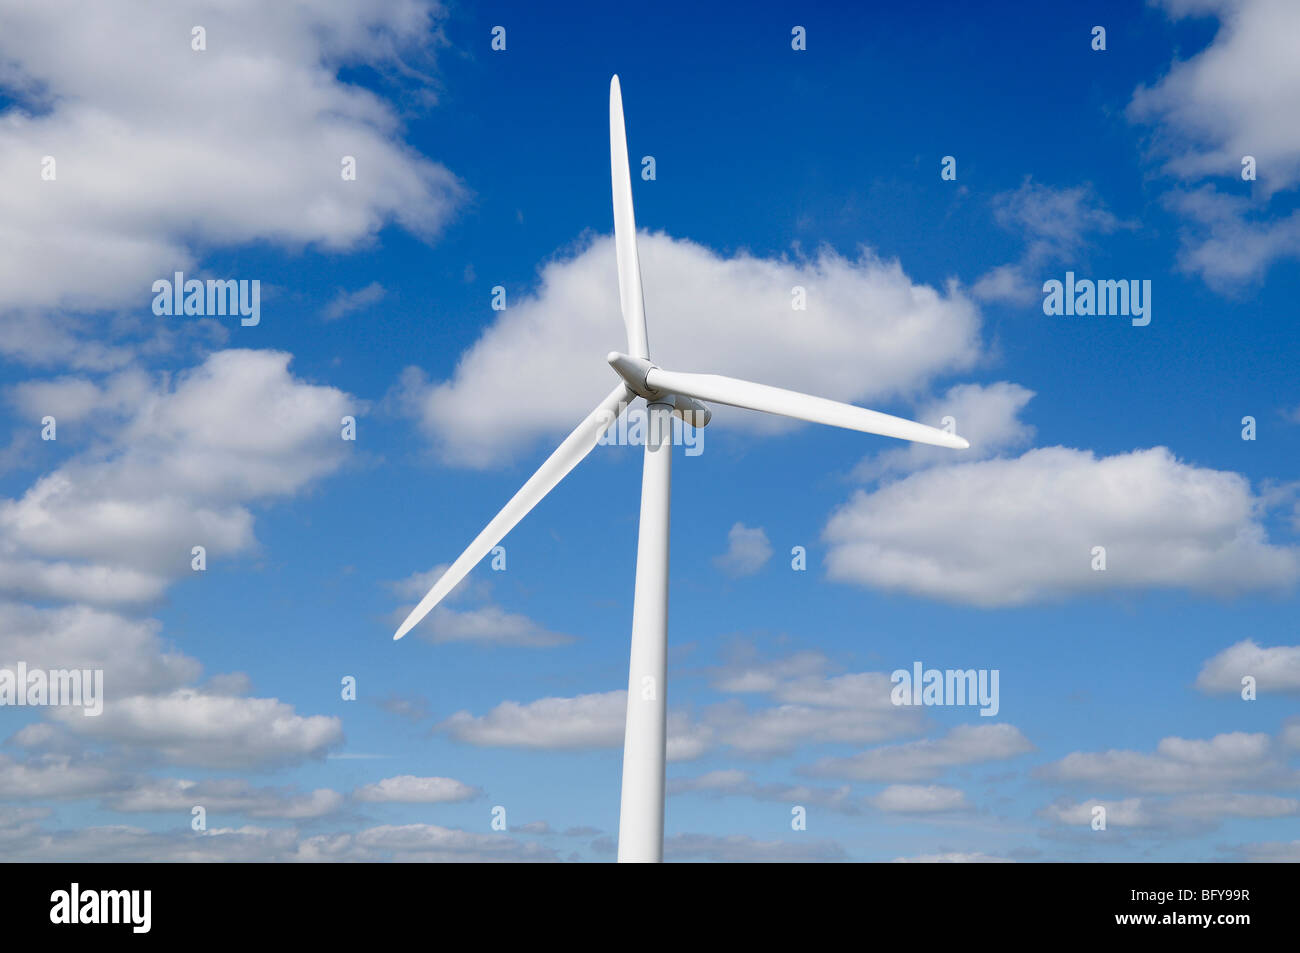 Wind Turbine Against a Cloud Filled Blue Sky - Stock Image